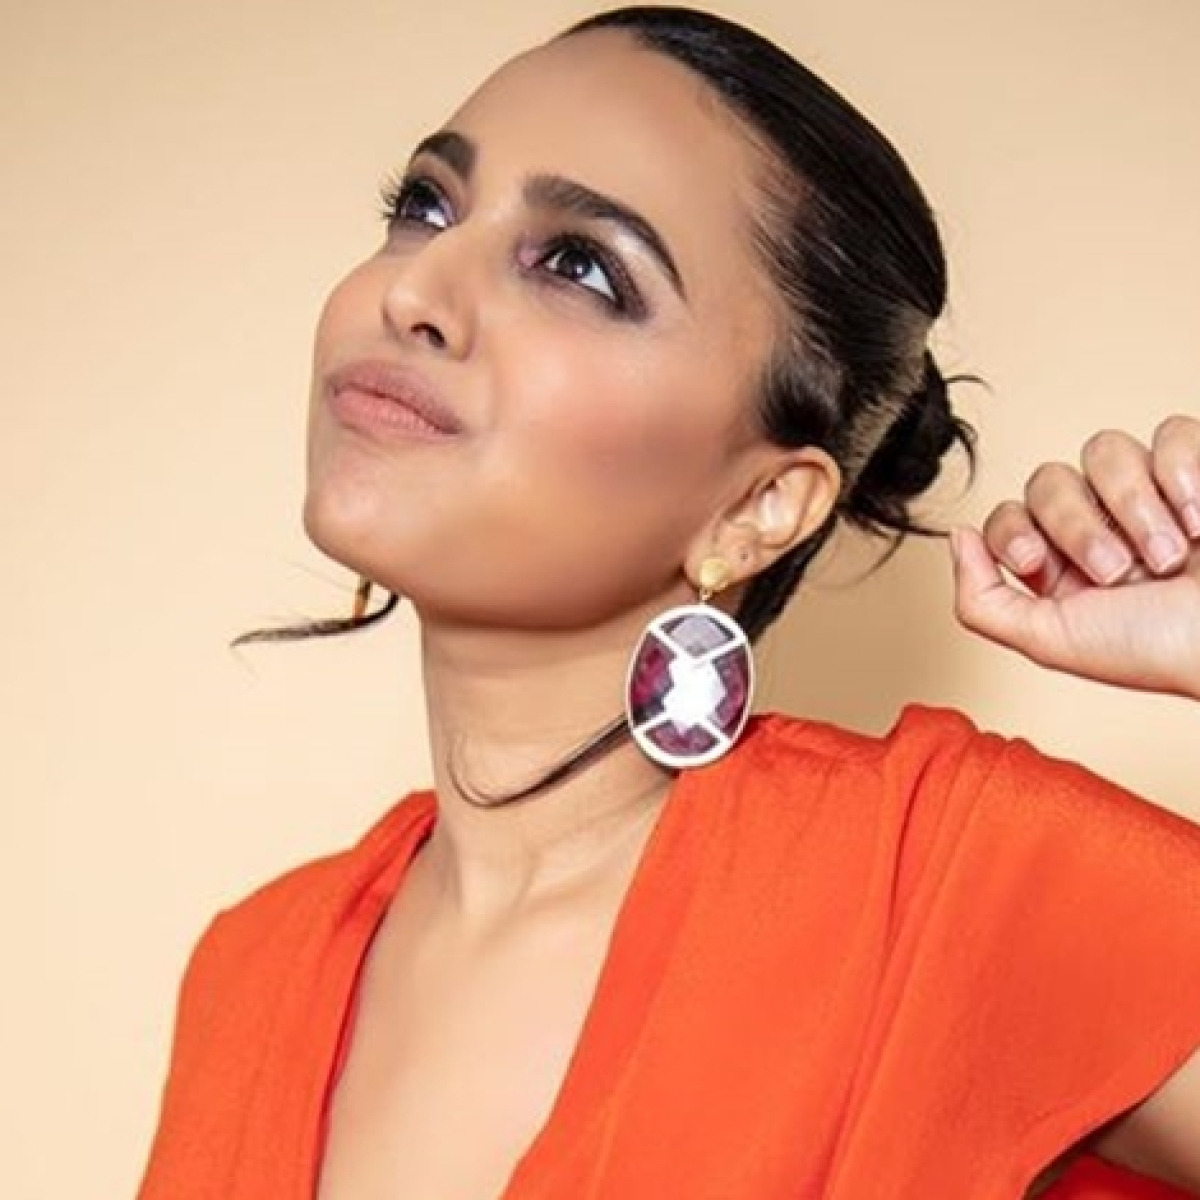 Is celebrity picking dog poop news? Swara Bhasker weighs in